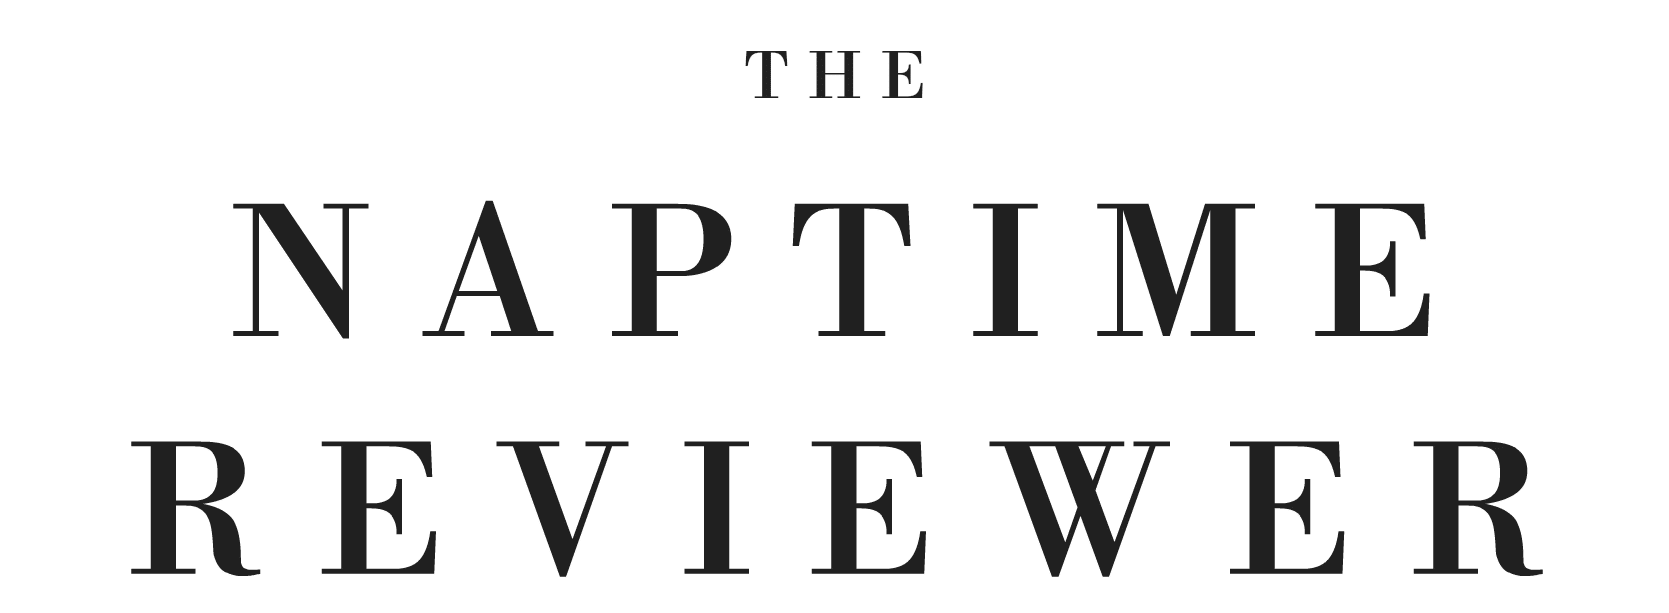 The Naptime Reviewer